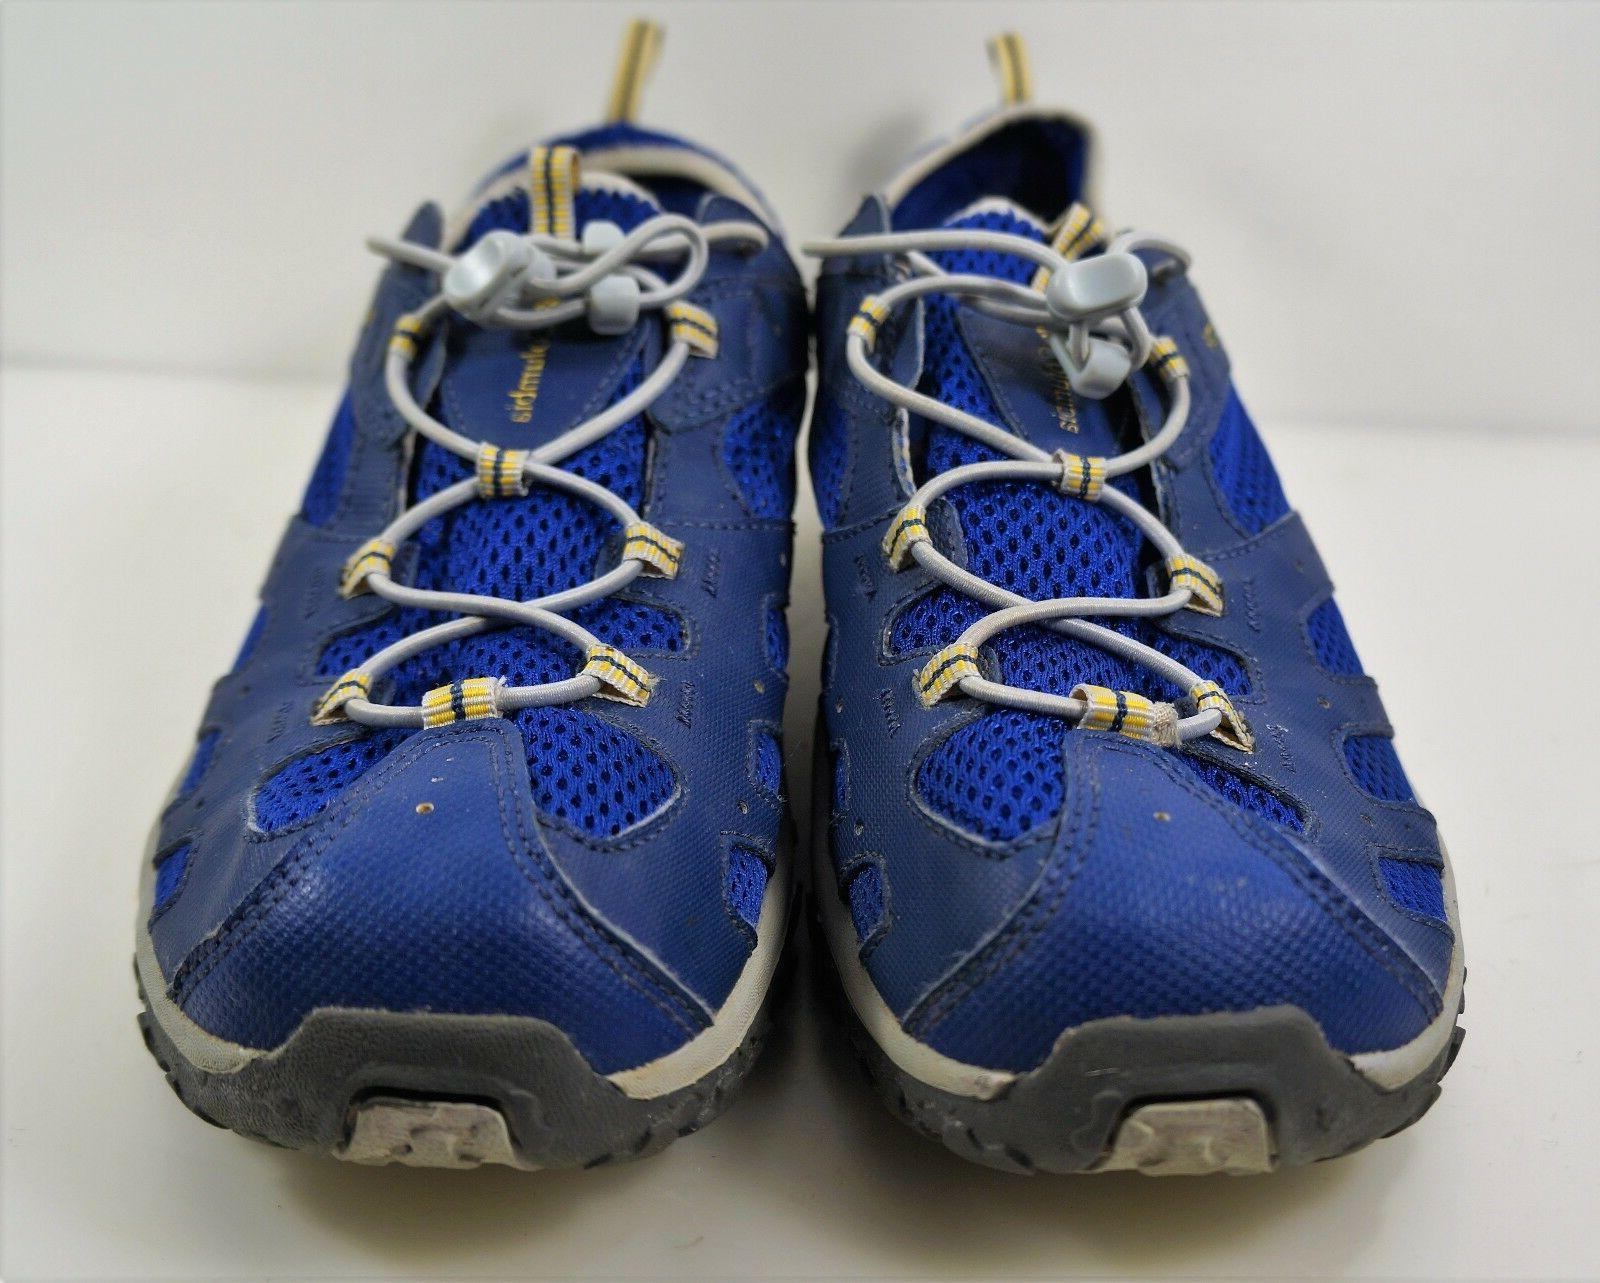 Columbia Size Soaker Womens Water Shoes BY4552-979